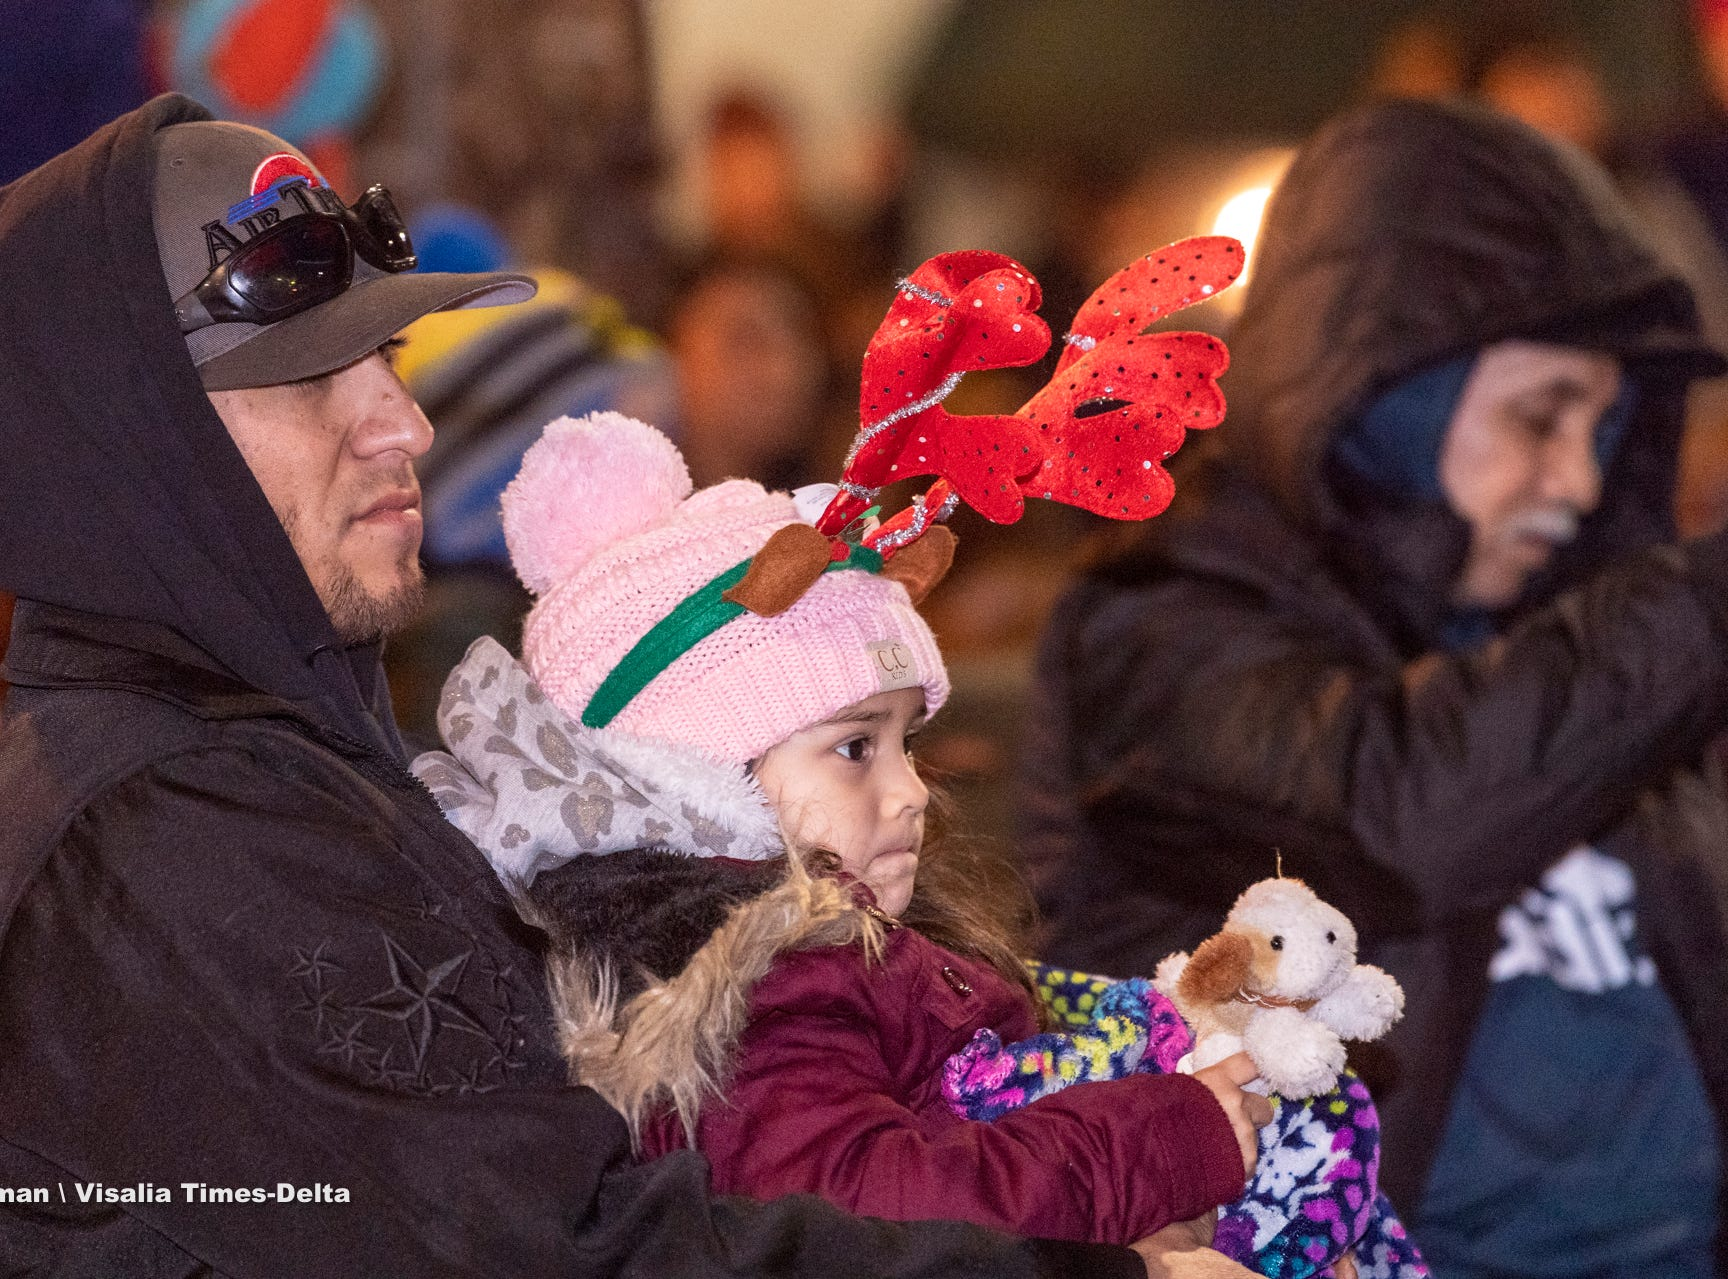 Alberto Luna of Tulare holds his daughter Scarlett Luna, 4, during the Tulare Children's Christmas Parade and Tree Lighting on Thursday, December 6, 2018.